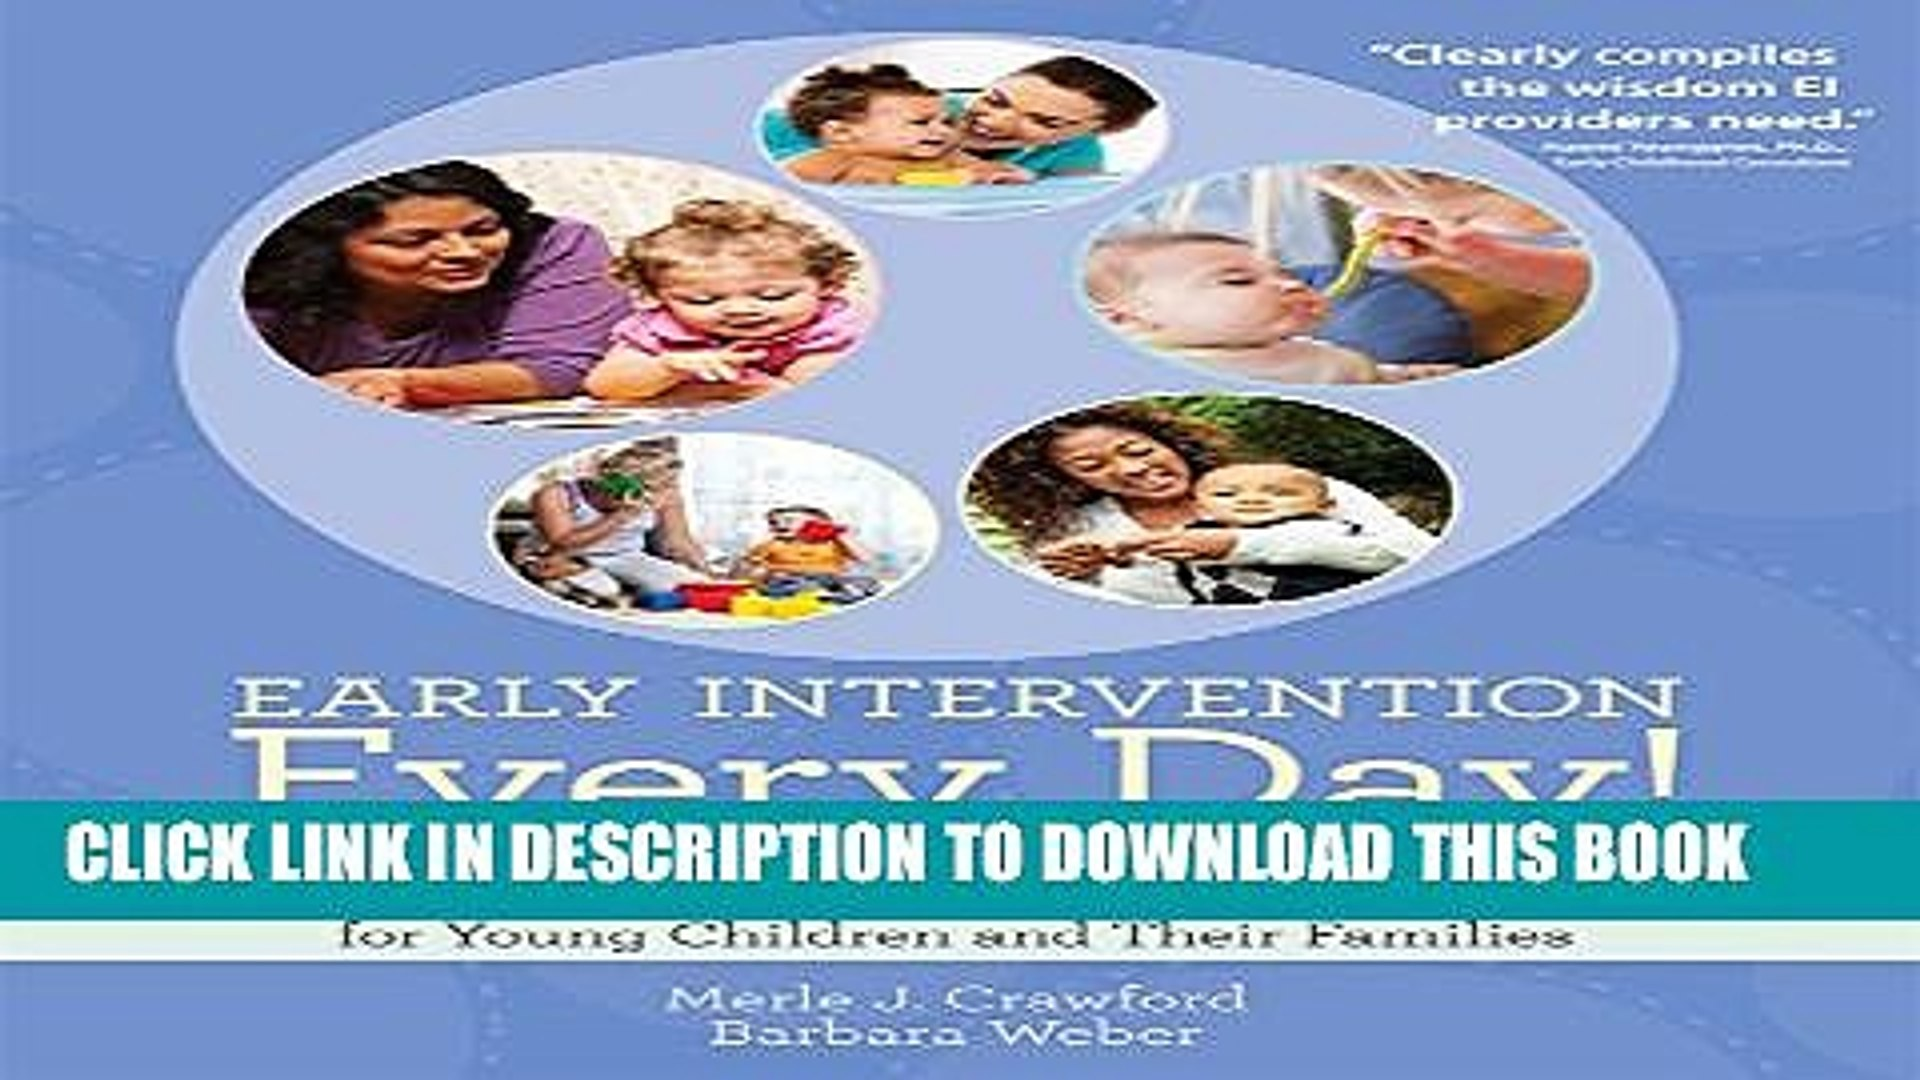 Collection Book Early Intervention Every Day!: Embedding Activities in Daily Routines for Young